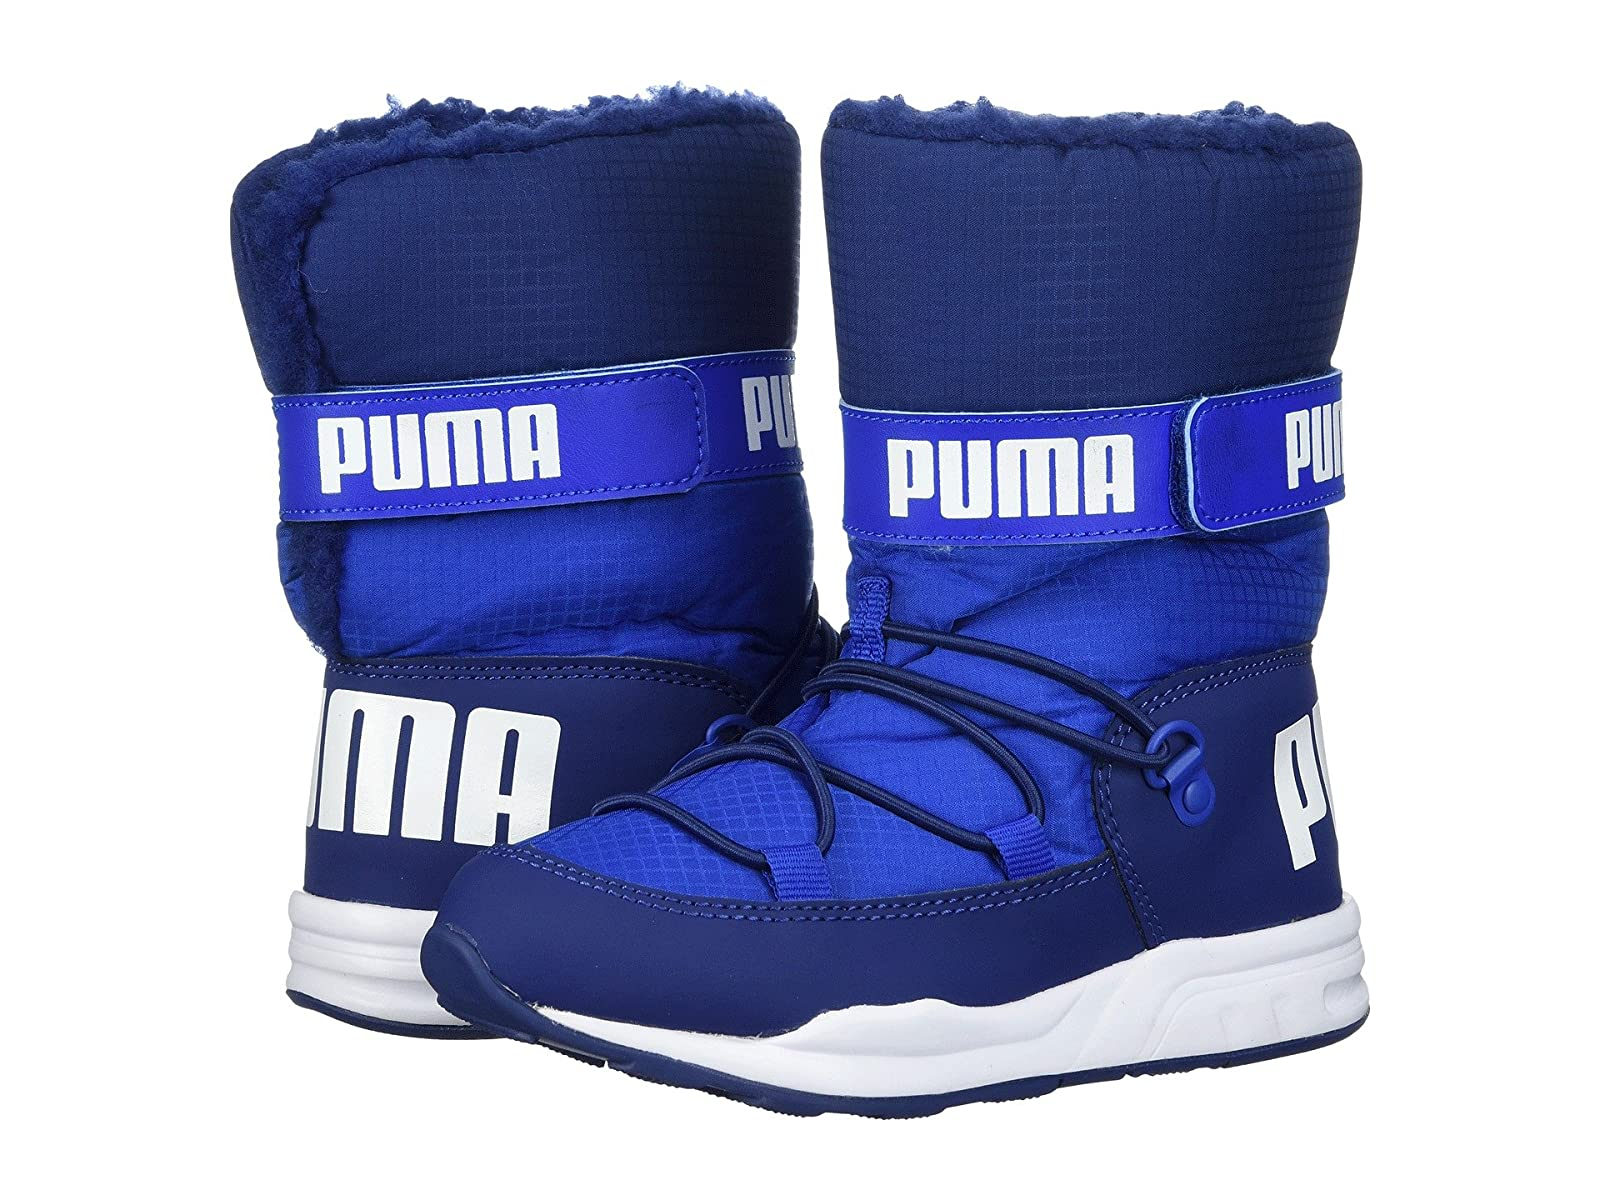 Puma Kids Trinomic Boot (Little Kid/Big Kid)Cheap and distinctive eye-catching shoes